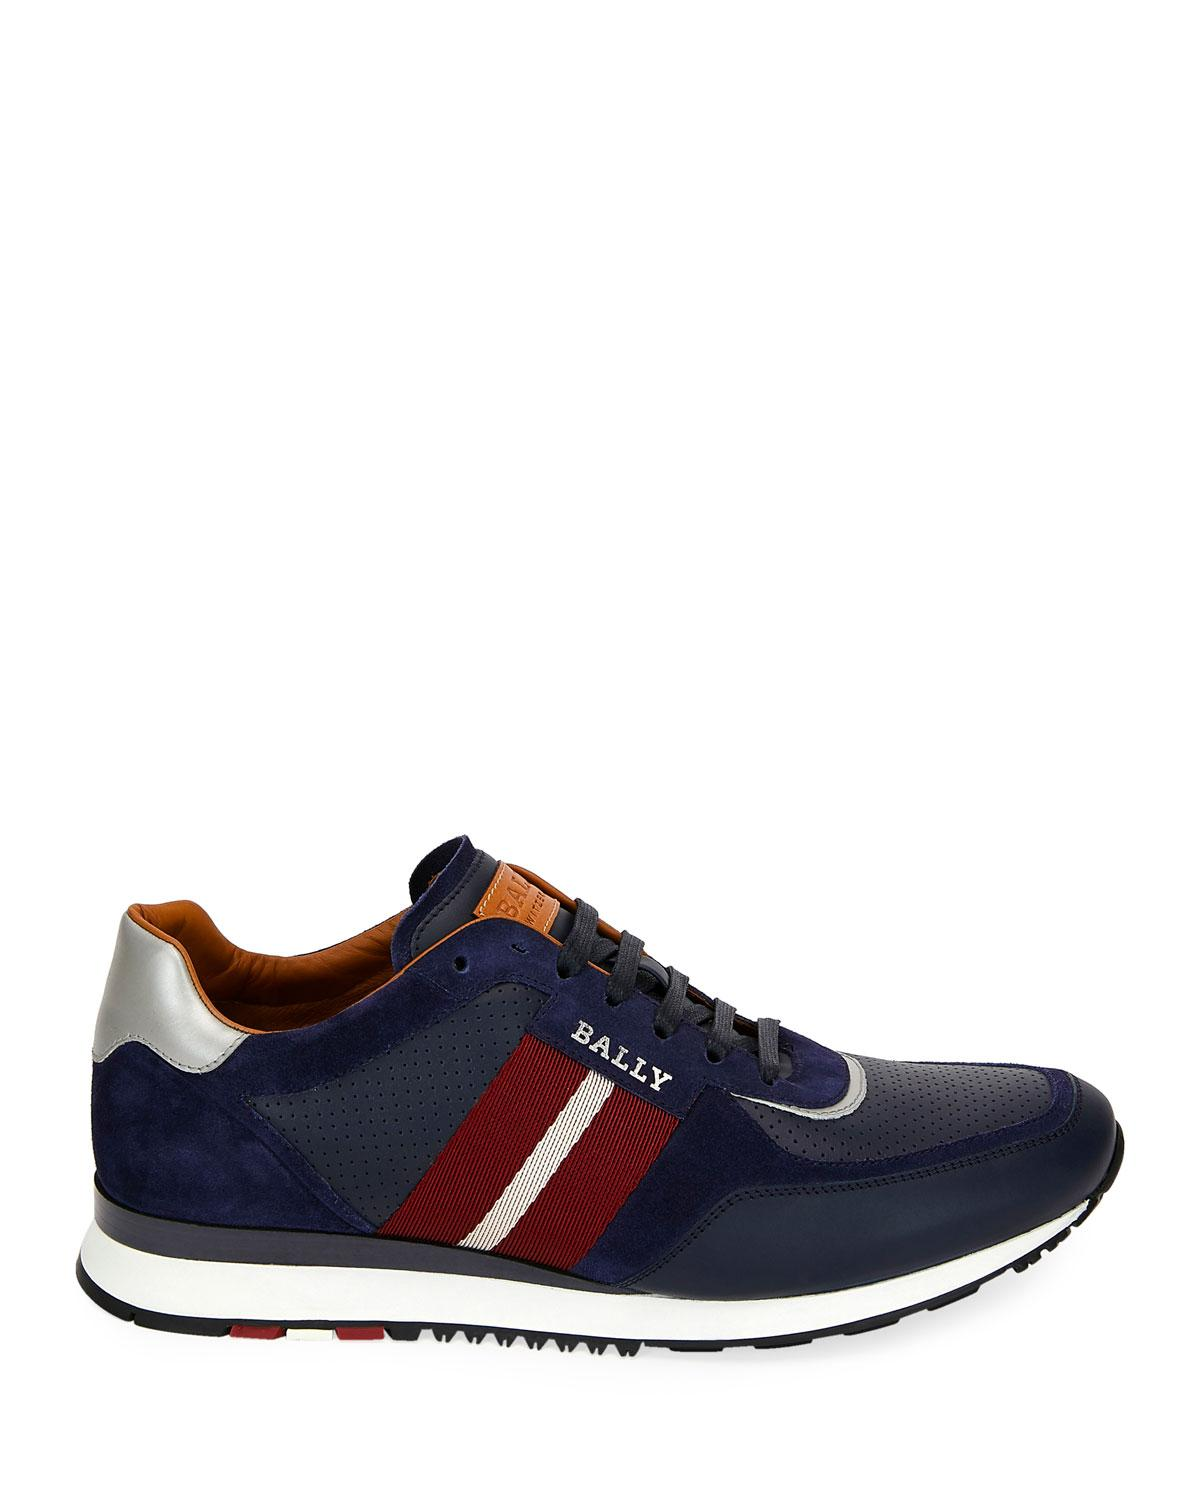 b6e2a0fcee205a Lyst - Bally Men s Aston Leather Sneakers - Ink - Size 13 D in Blue for Men